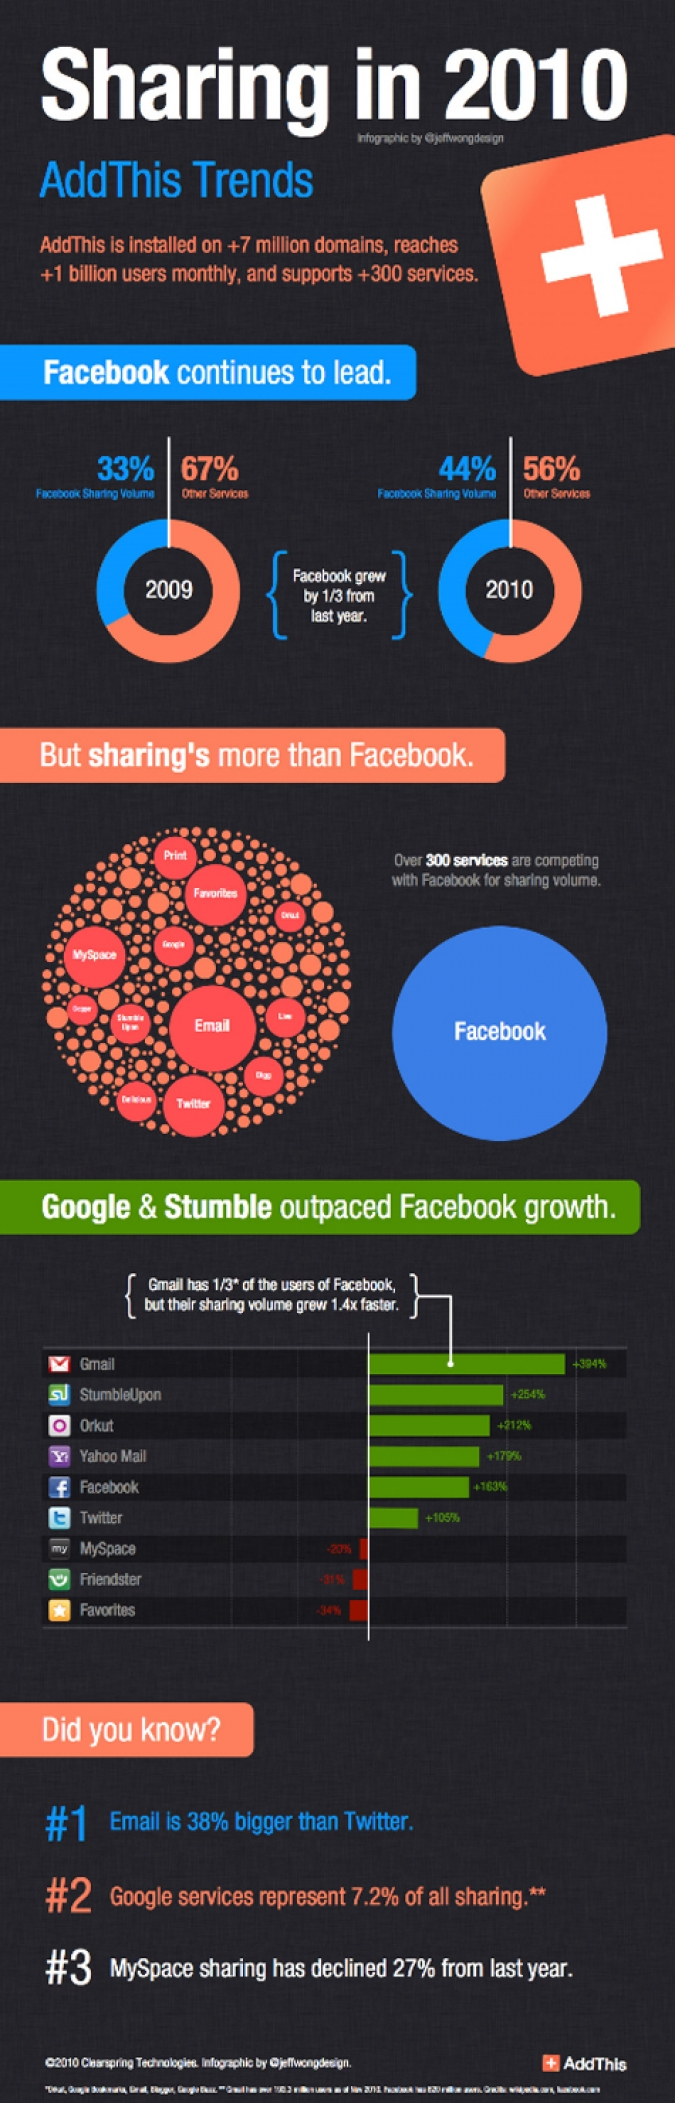 Grafik Add This Sharing Trends 2010